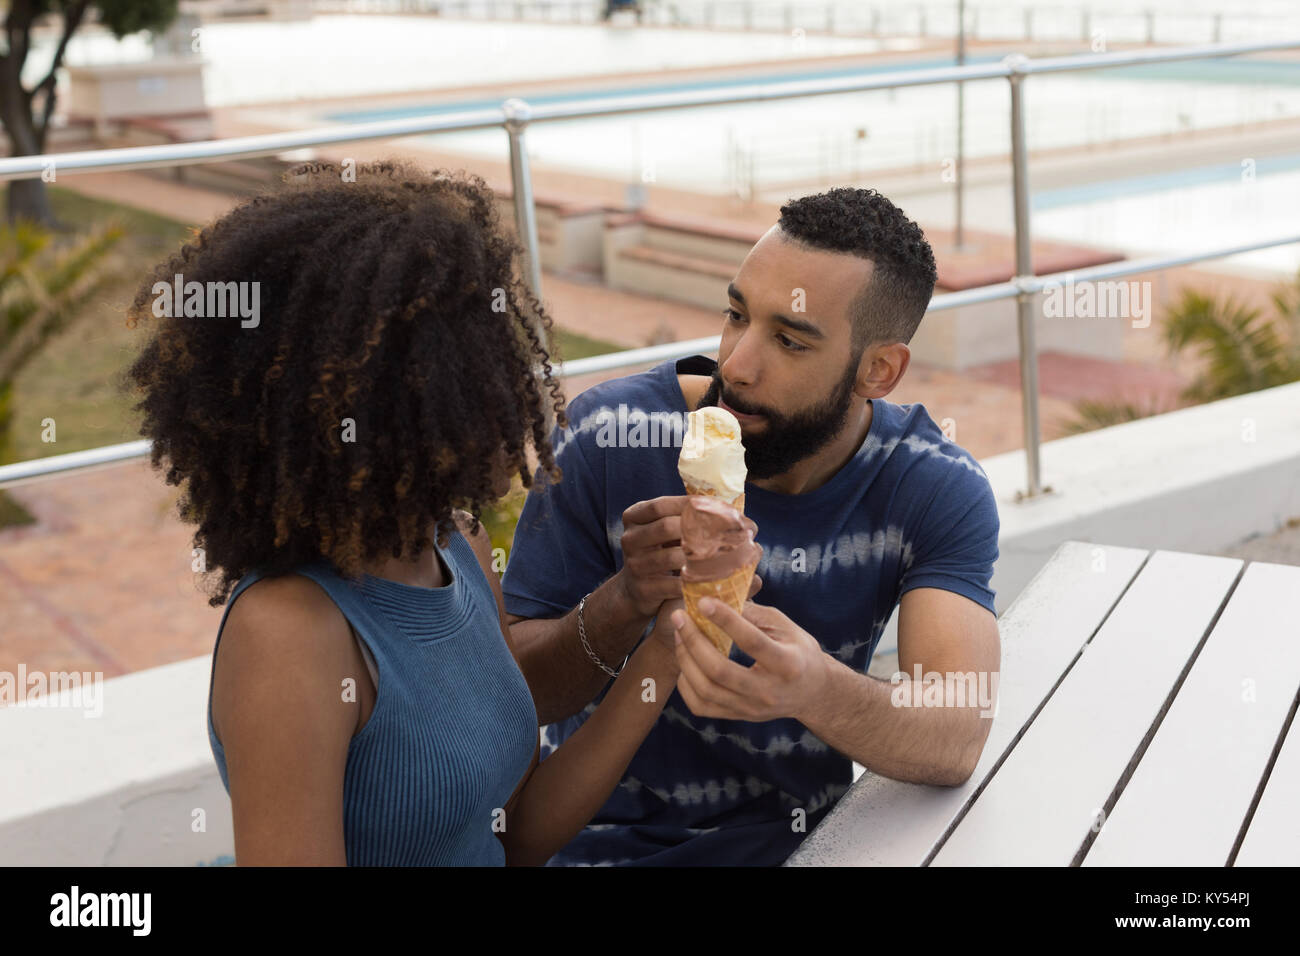 Couple having ice cream at promenade - Stock Image